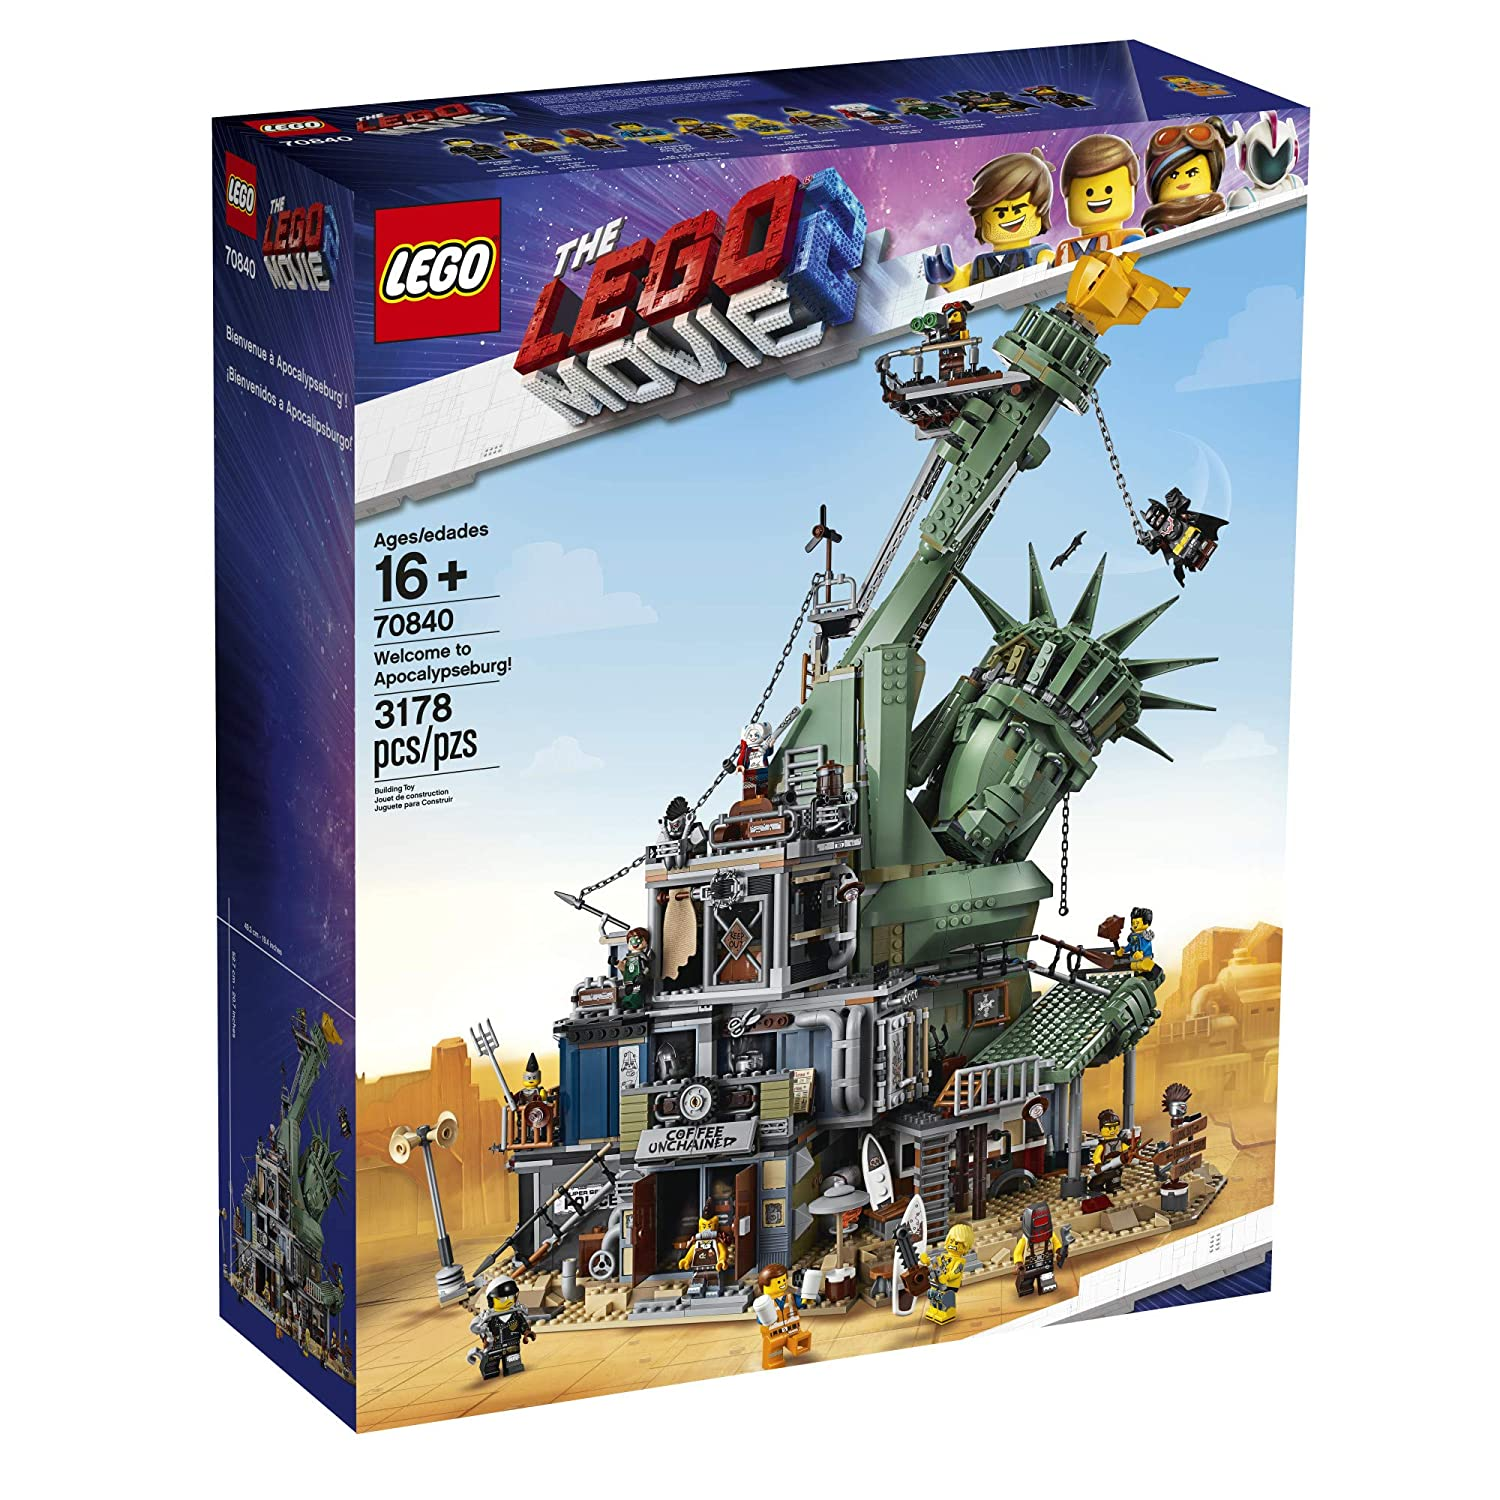 The Lego Movie 2 Sets Retiring Soon The Brick Fan